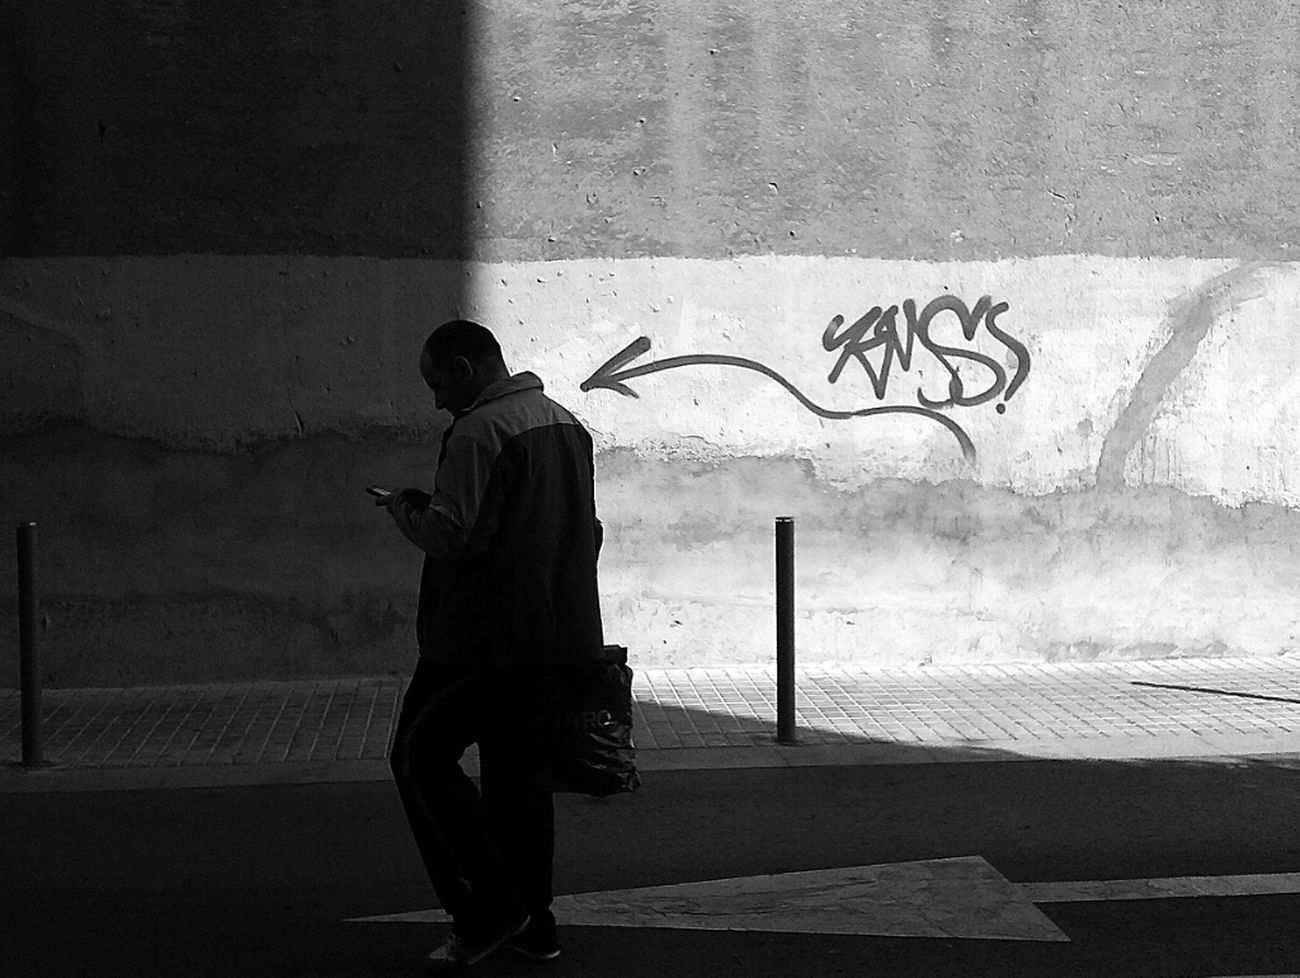 Streetphotography Blackandwhite Street Life Shadows Streetphoto_bw Bw_collection